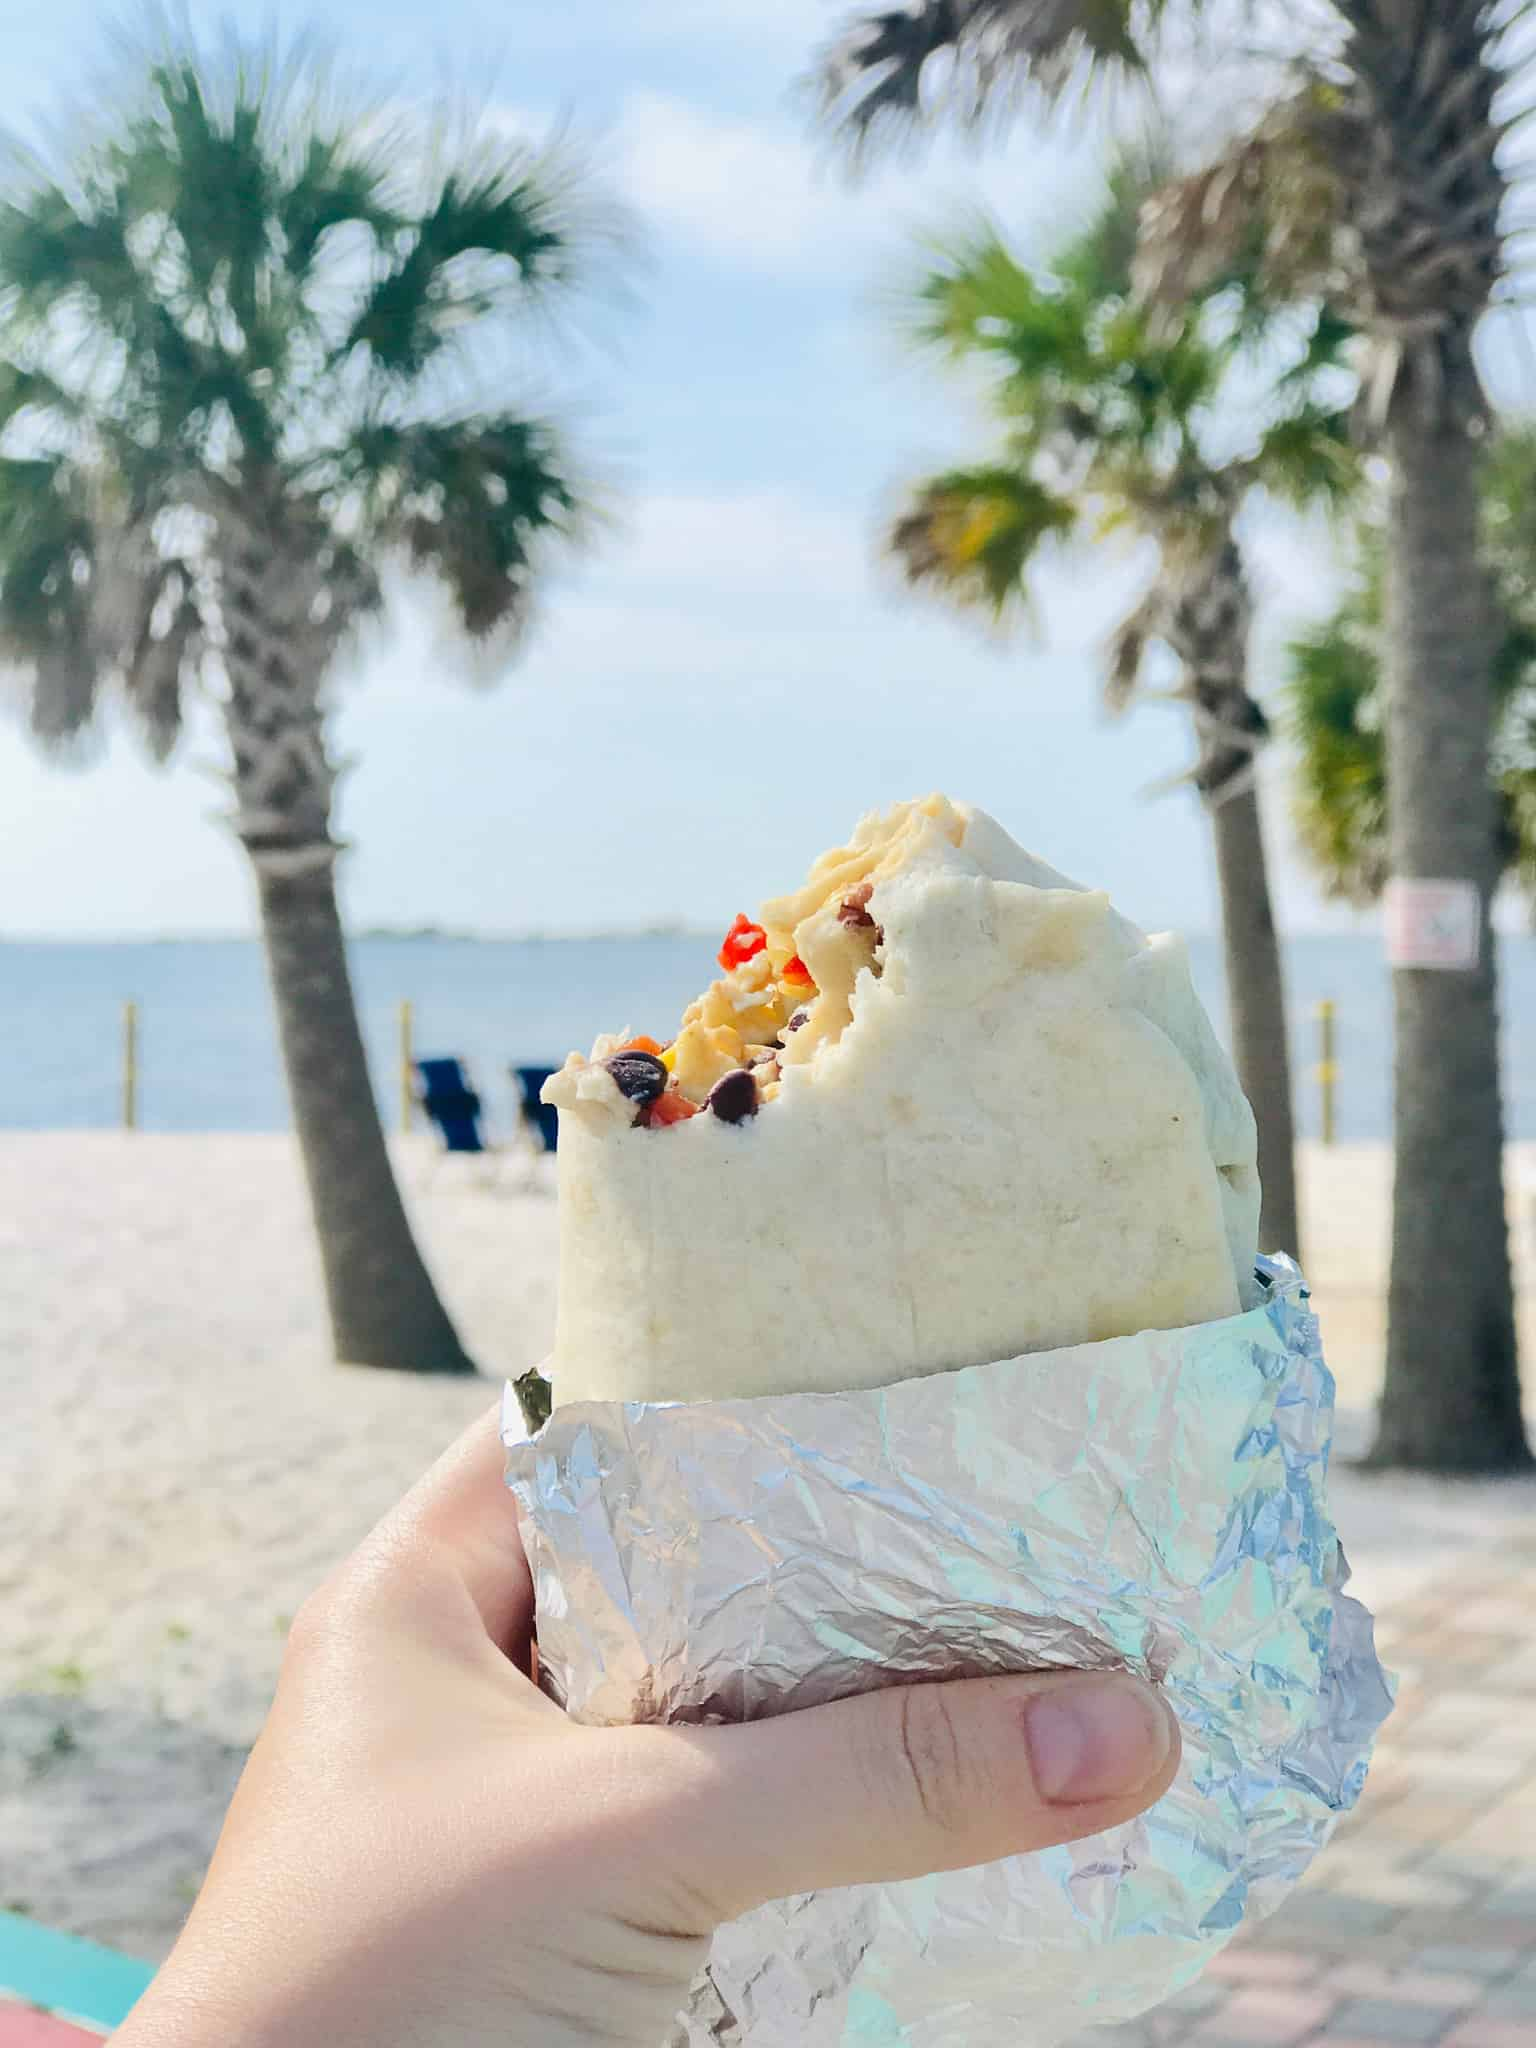 breakfast burrito and palm trees